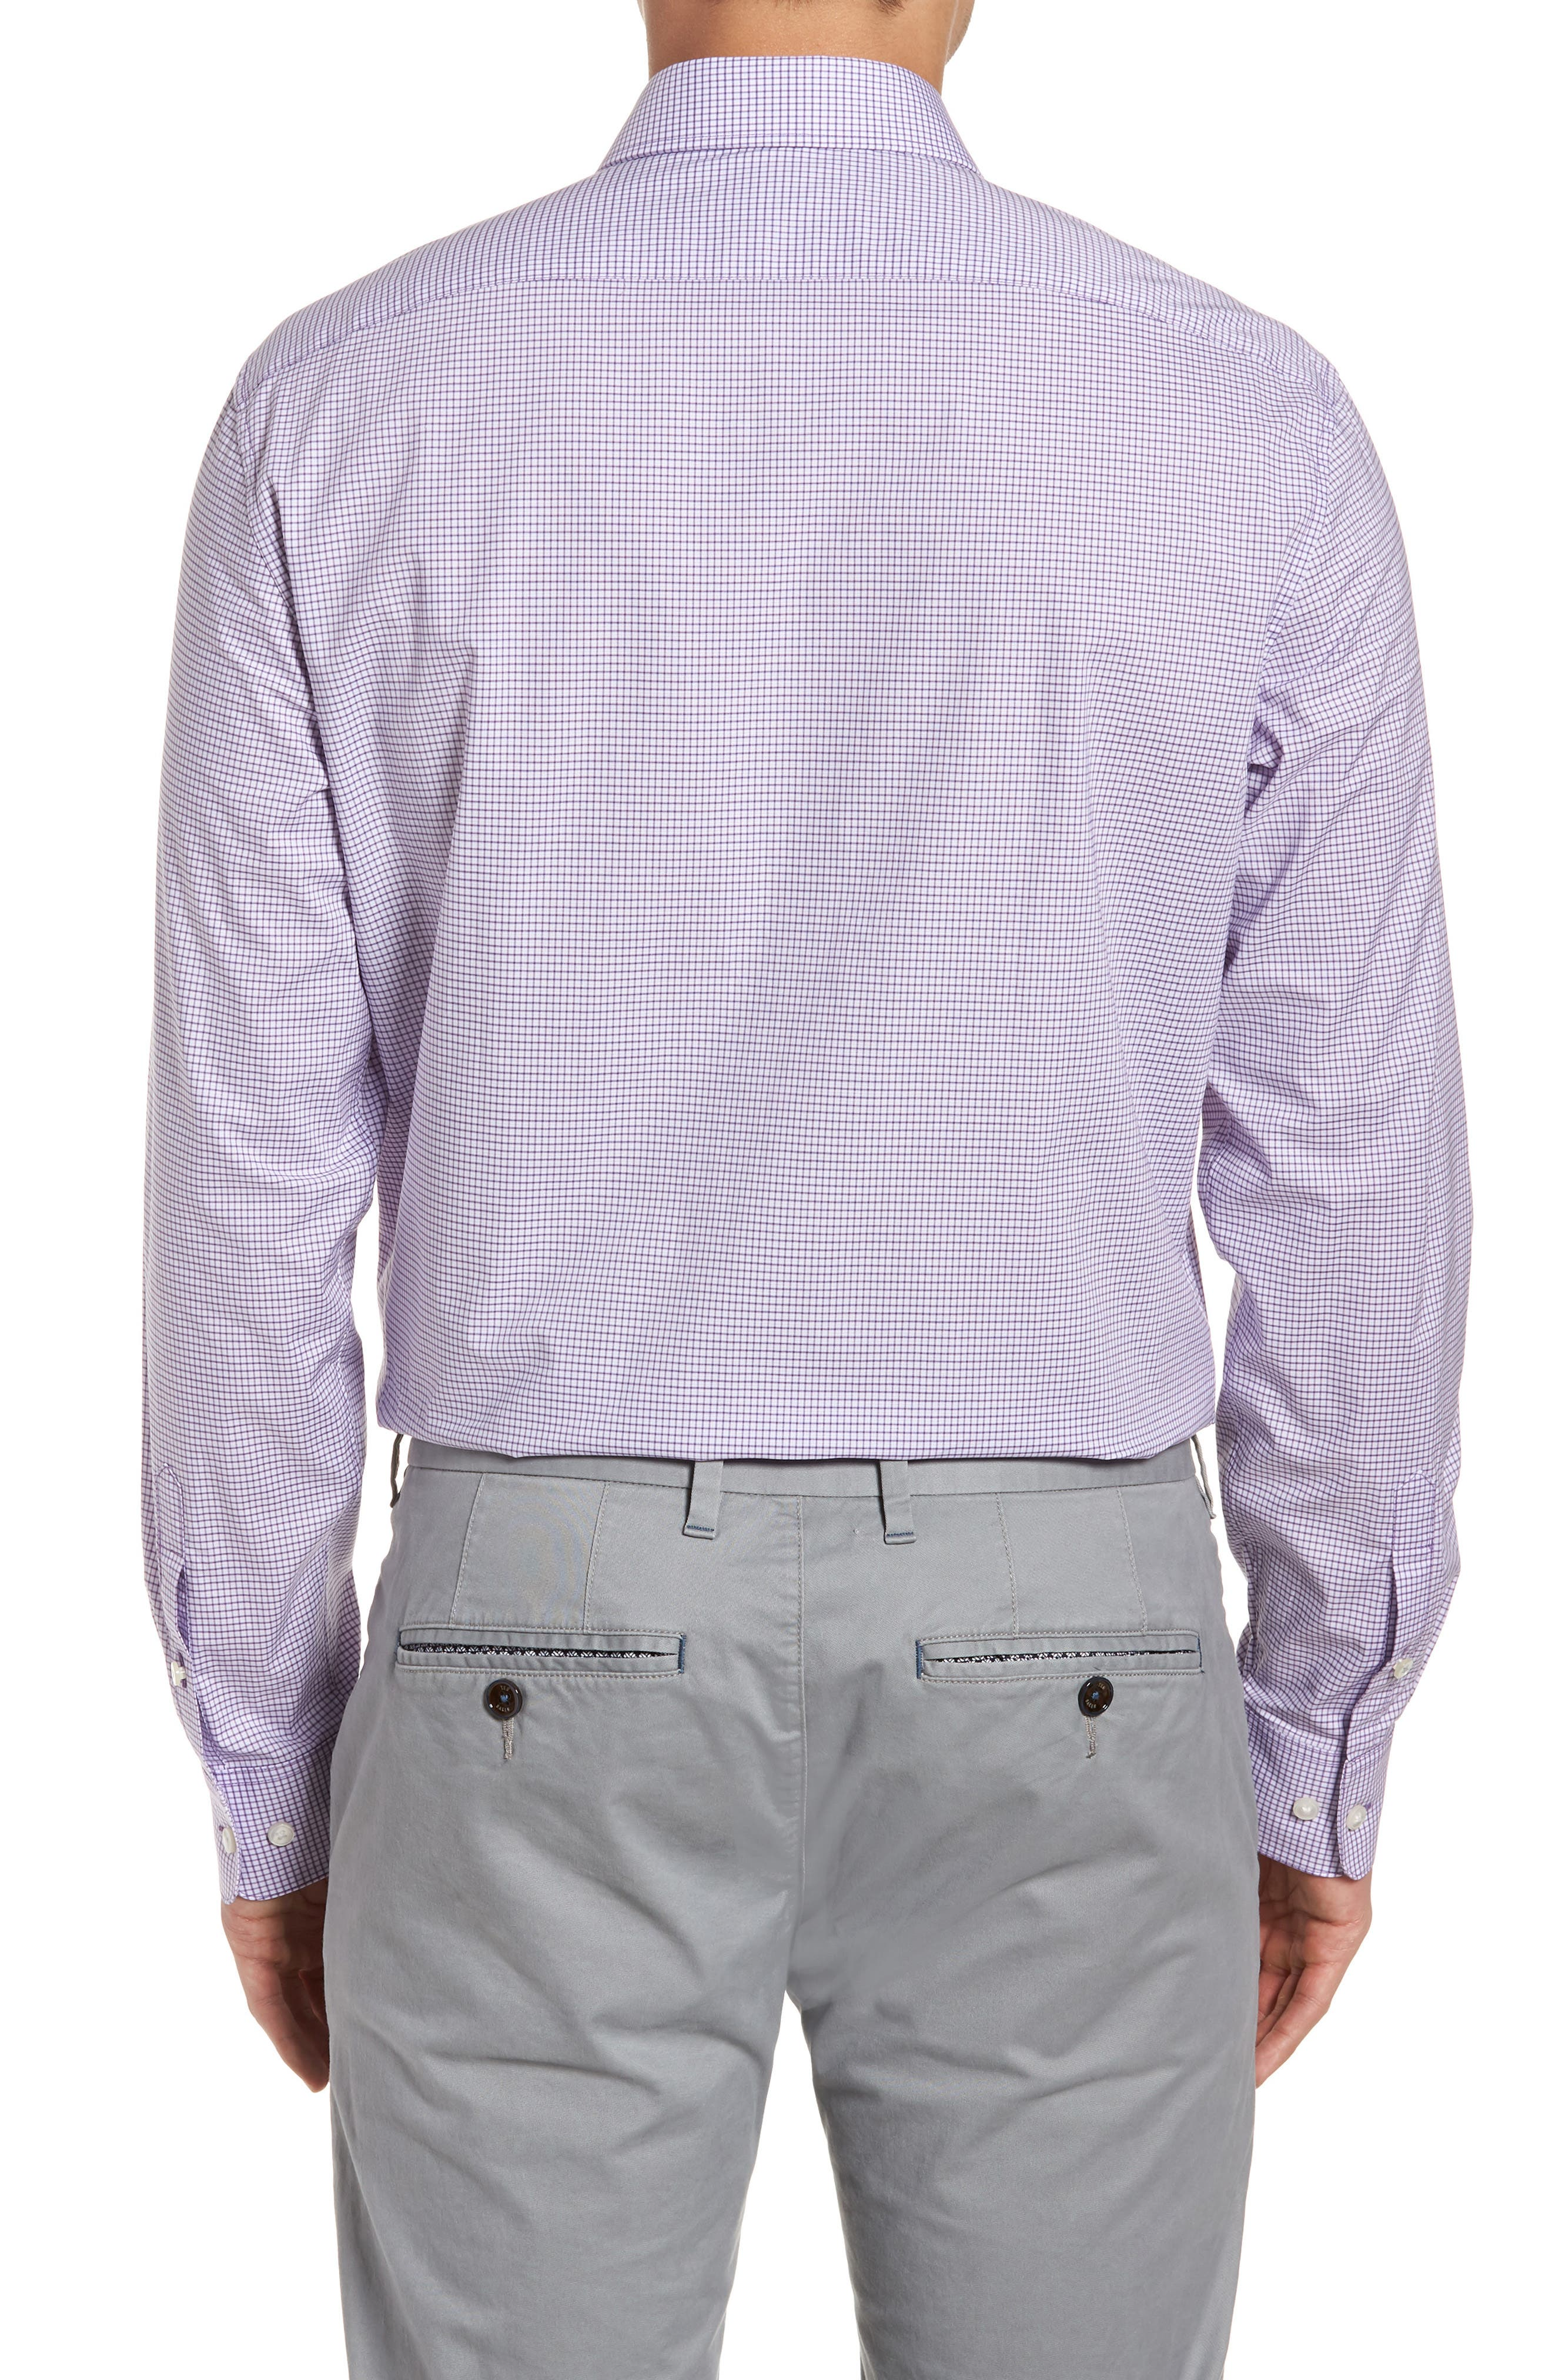 Regular Fit Stretch Check Dress Shirt,                             Alternate thumbnail 3, color,                             522